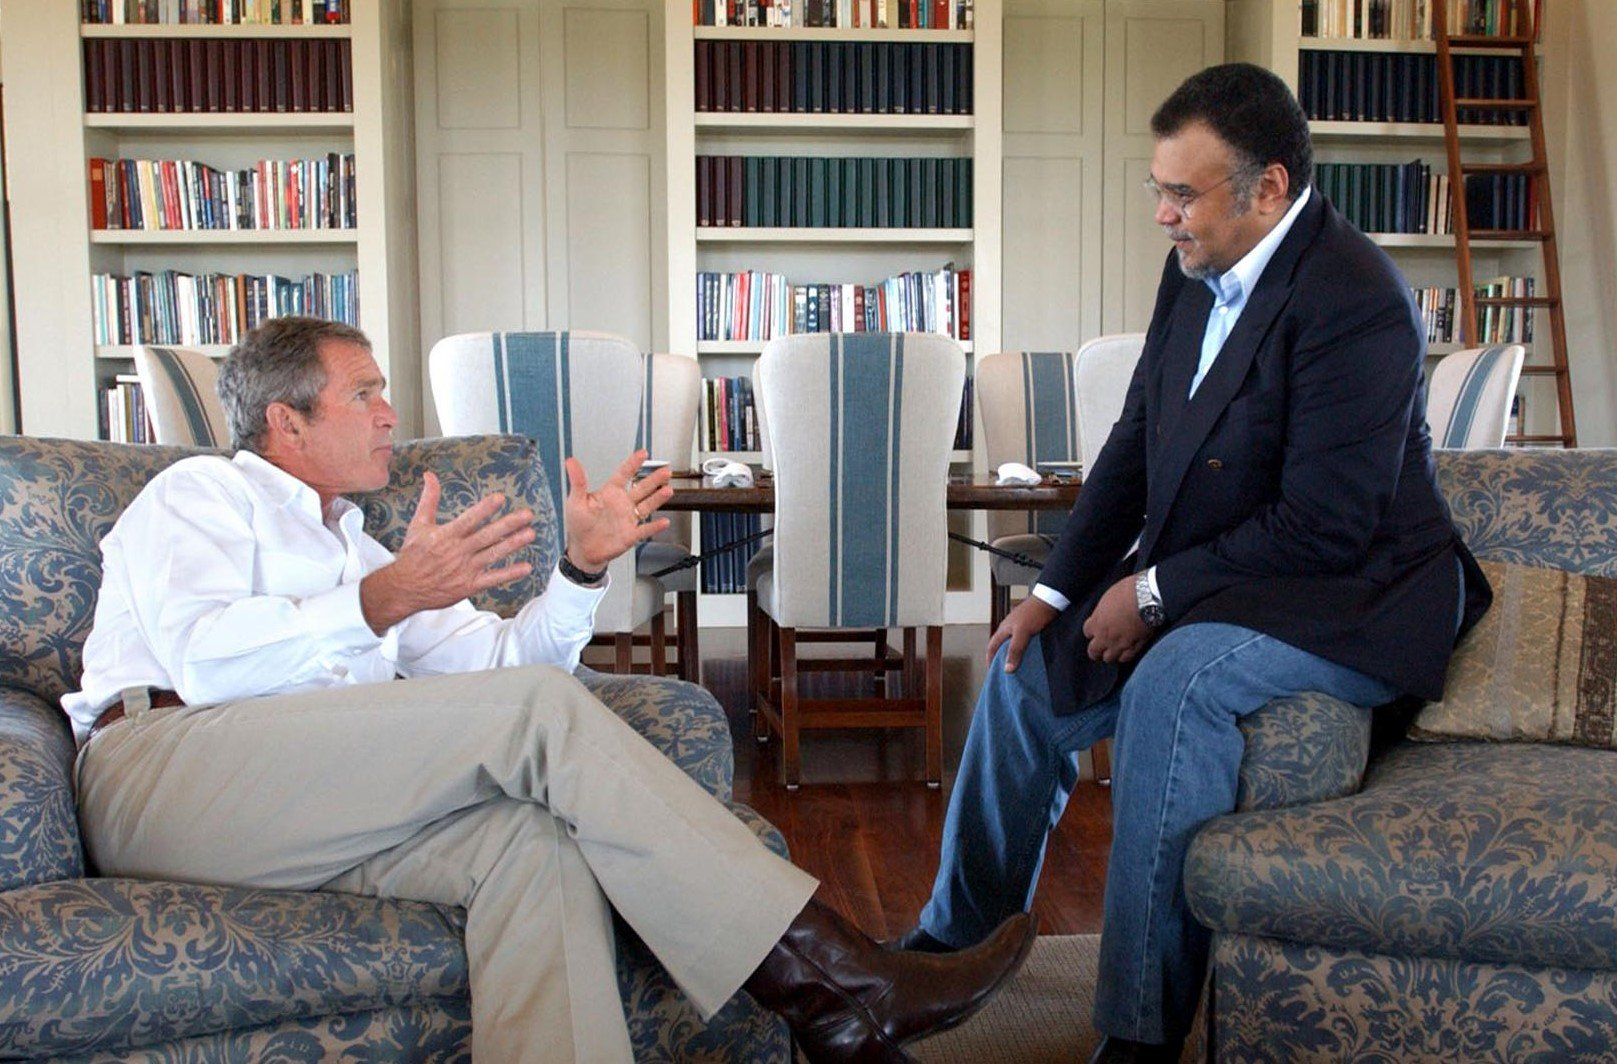 US President George W. Bush (L) meets with Saudi Arabian Ambassador to the US Prince Bandar bin Sultan at the Bush Ranch 27 August 2002 in Crawford, Texas.